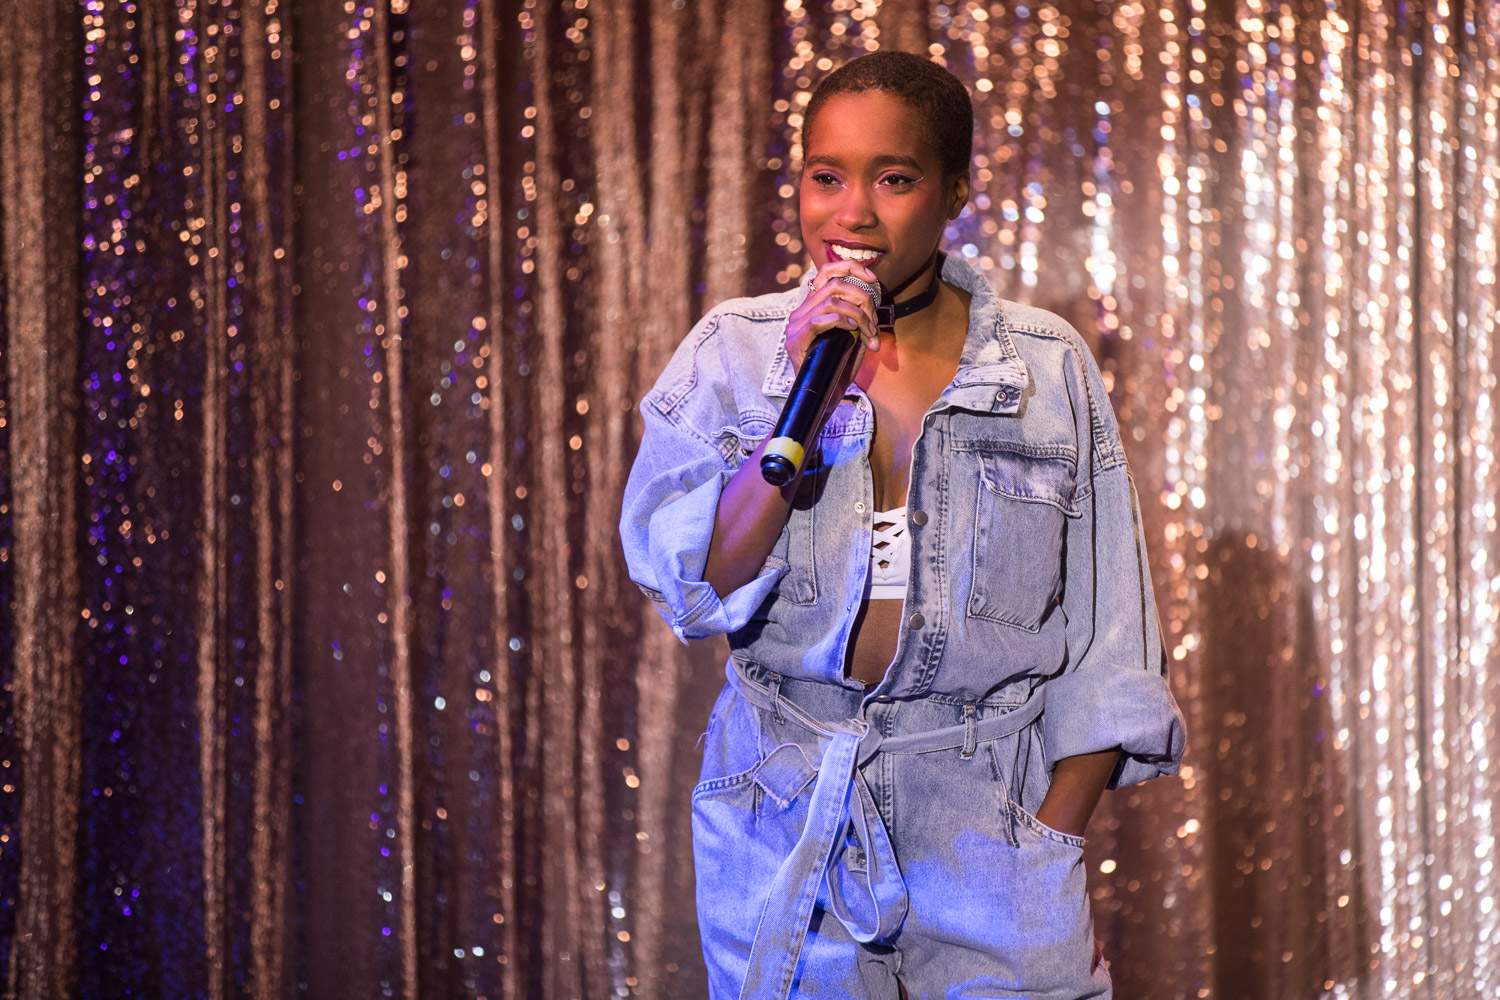 Comedian Ameerah Sanders during the Comedy Cabaret at Missie B's in Kansas City, MO on June 29, 2021